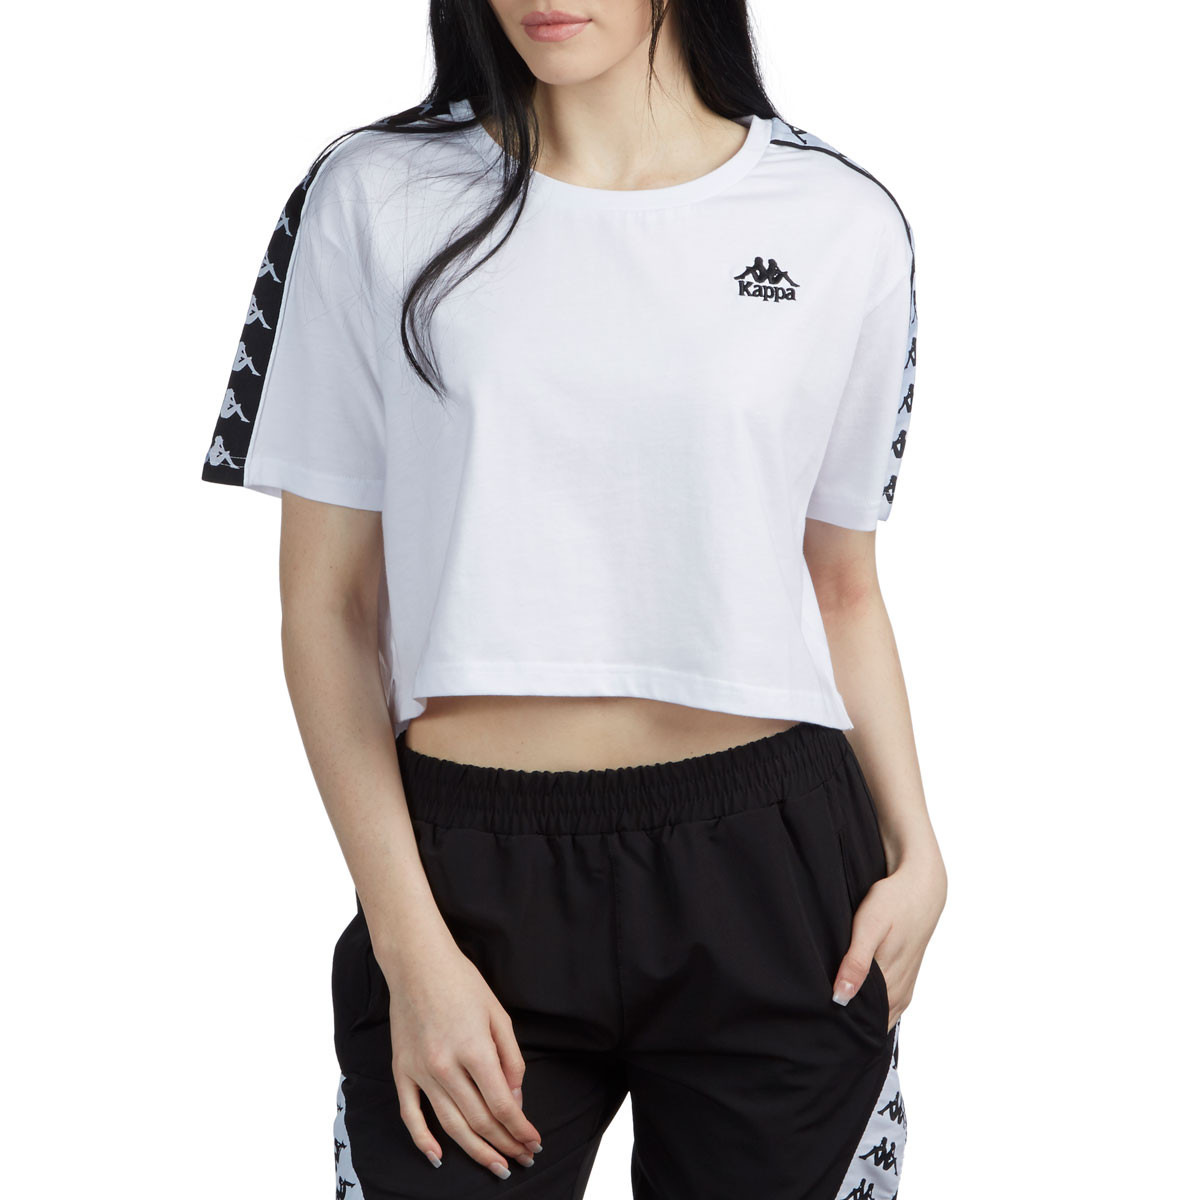 wholesale price various design colours and striking Kappa Womens 222 Banda Apua T-Shirt - White/Black